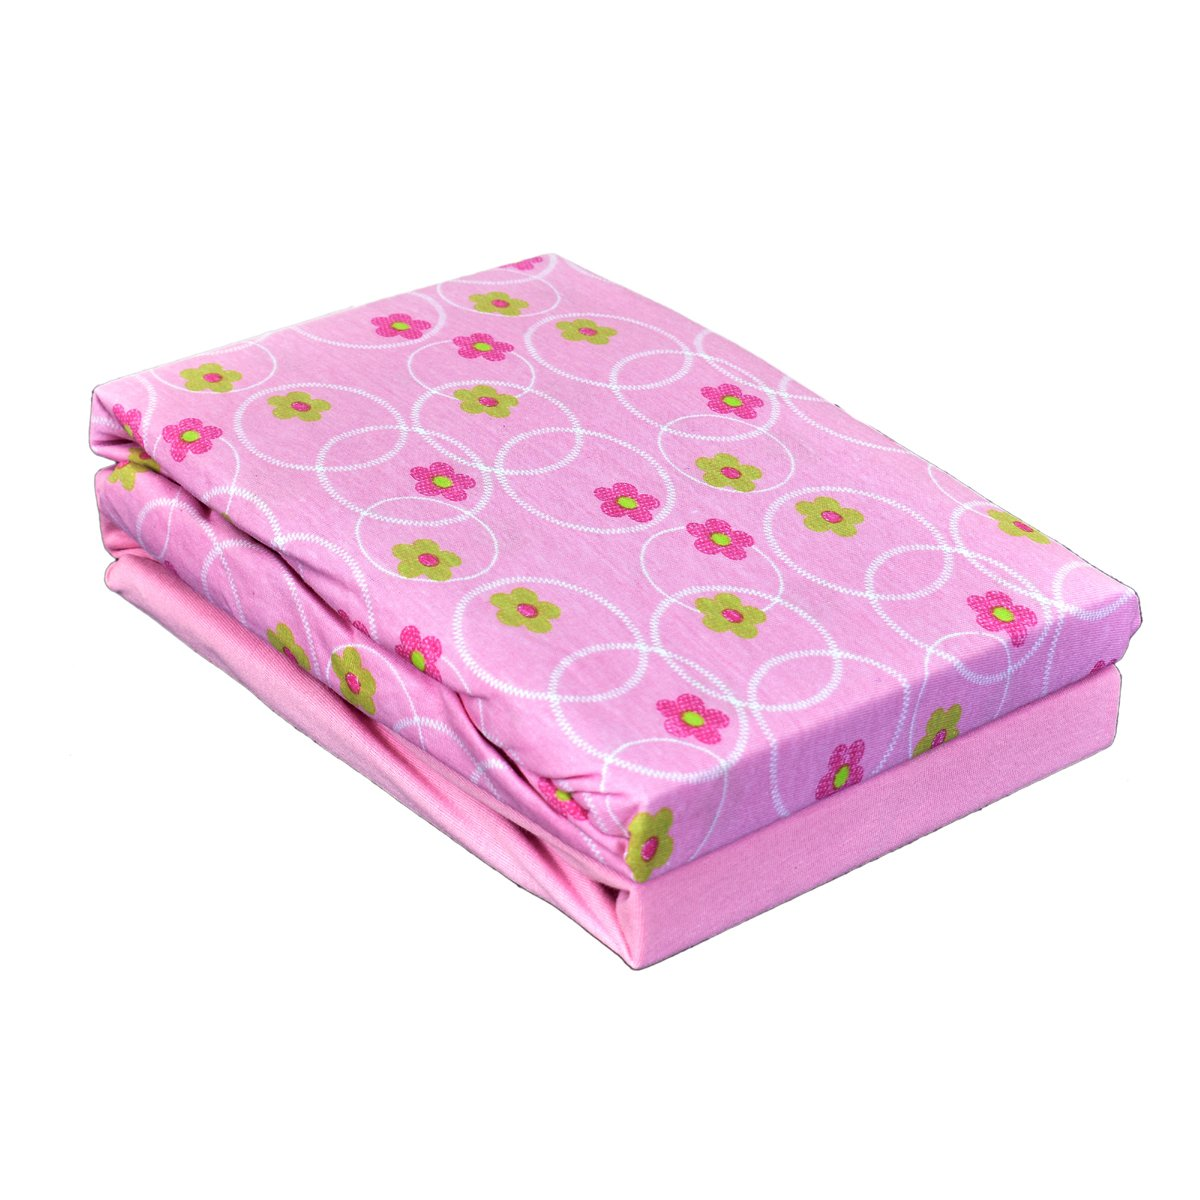 Dudu N Girlie Cot 100 Percent Cotton Fitted Sheet 120x60cm, Flower Pink, Pack of 2 Dudu N Girlie Ltd